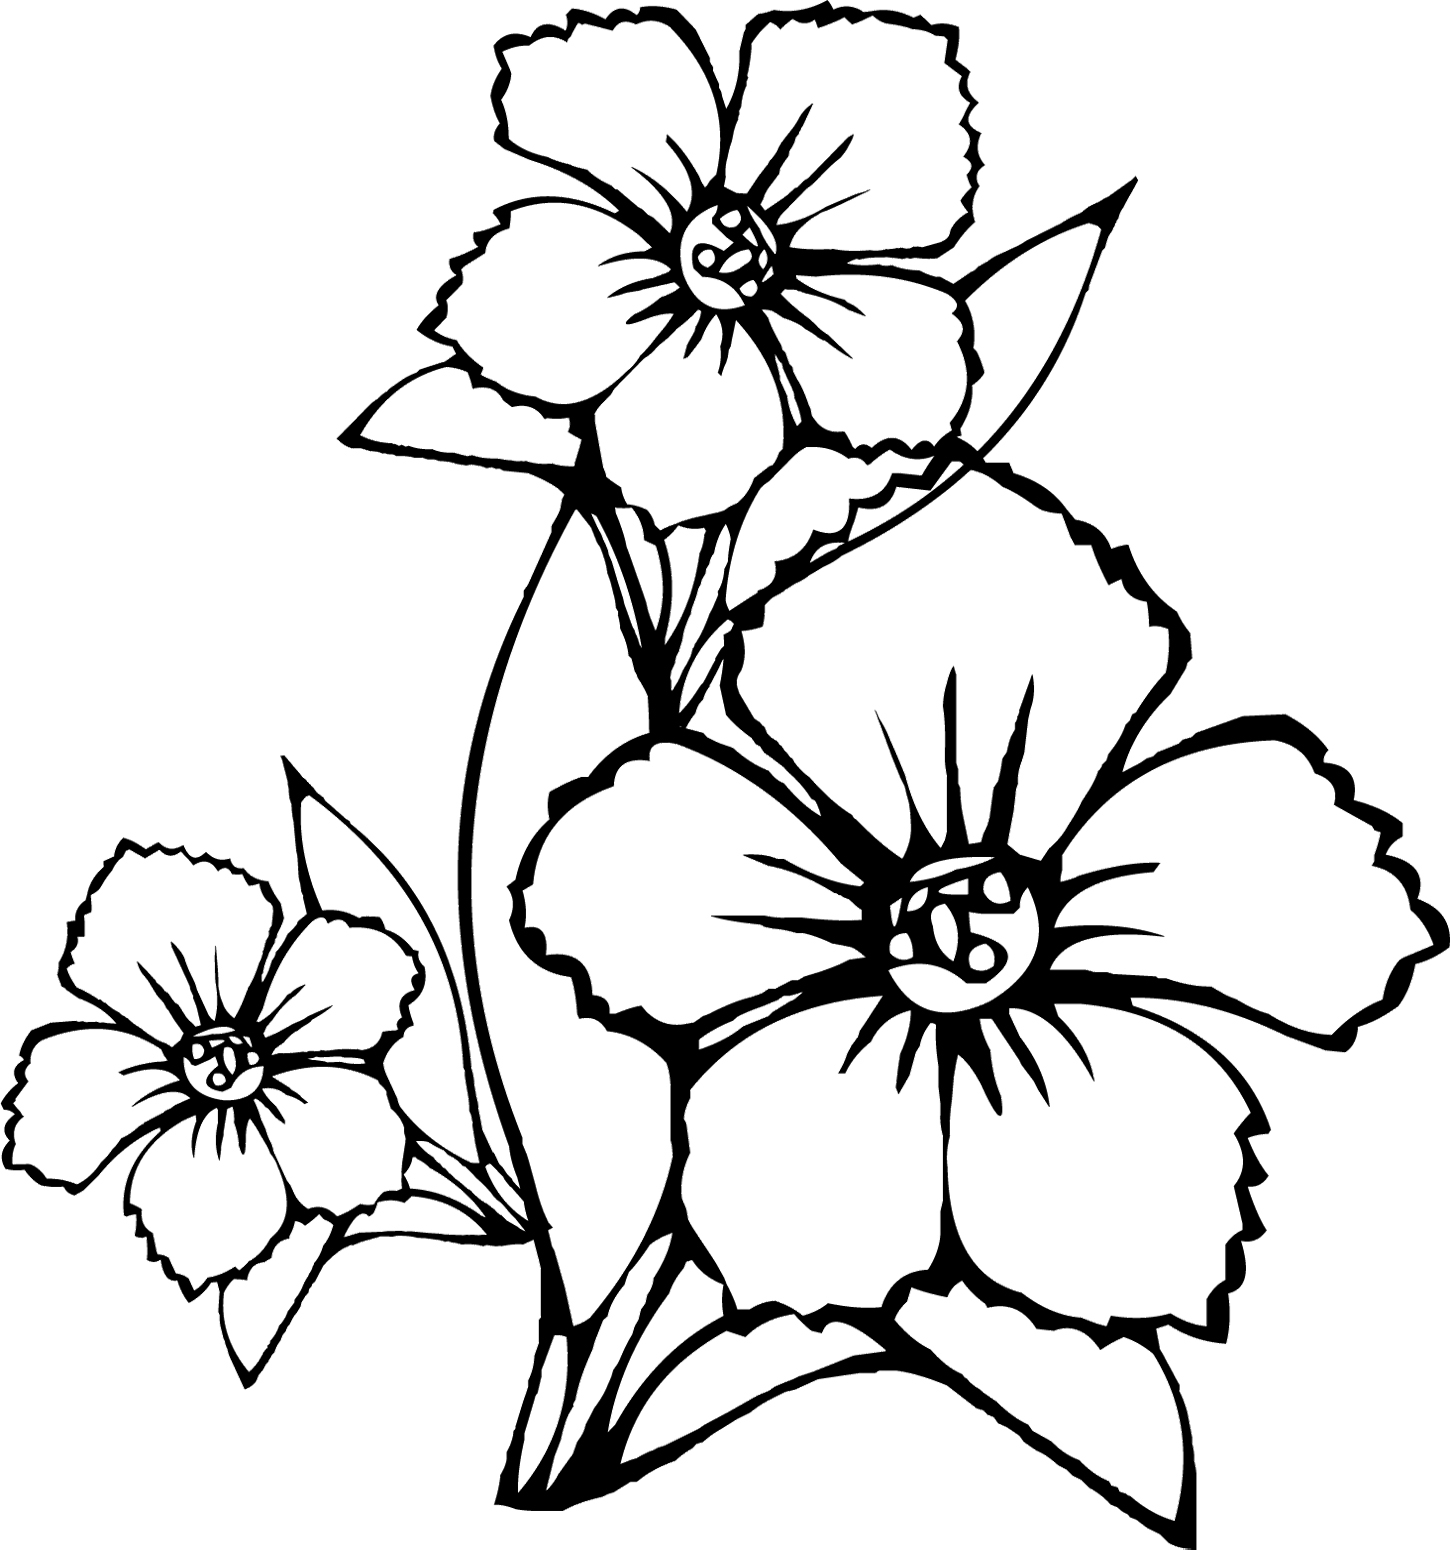 kids hawaii flowers coloring pages - photo#8